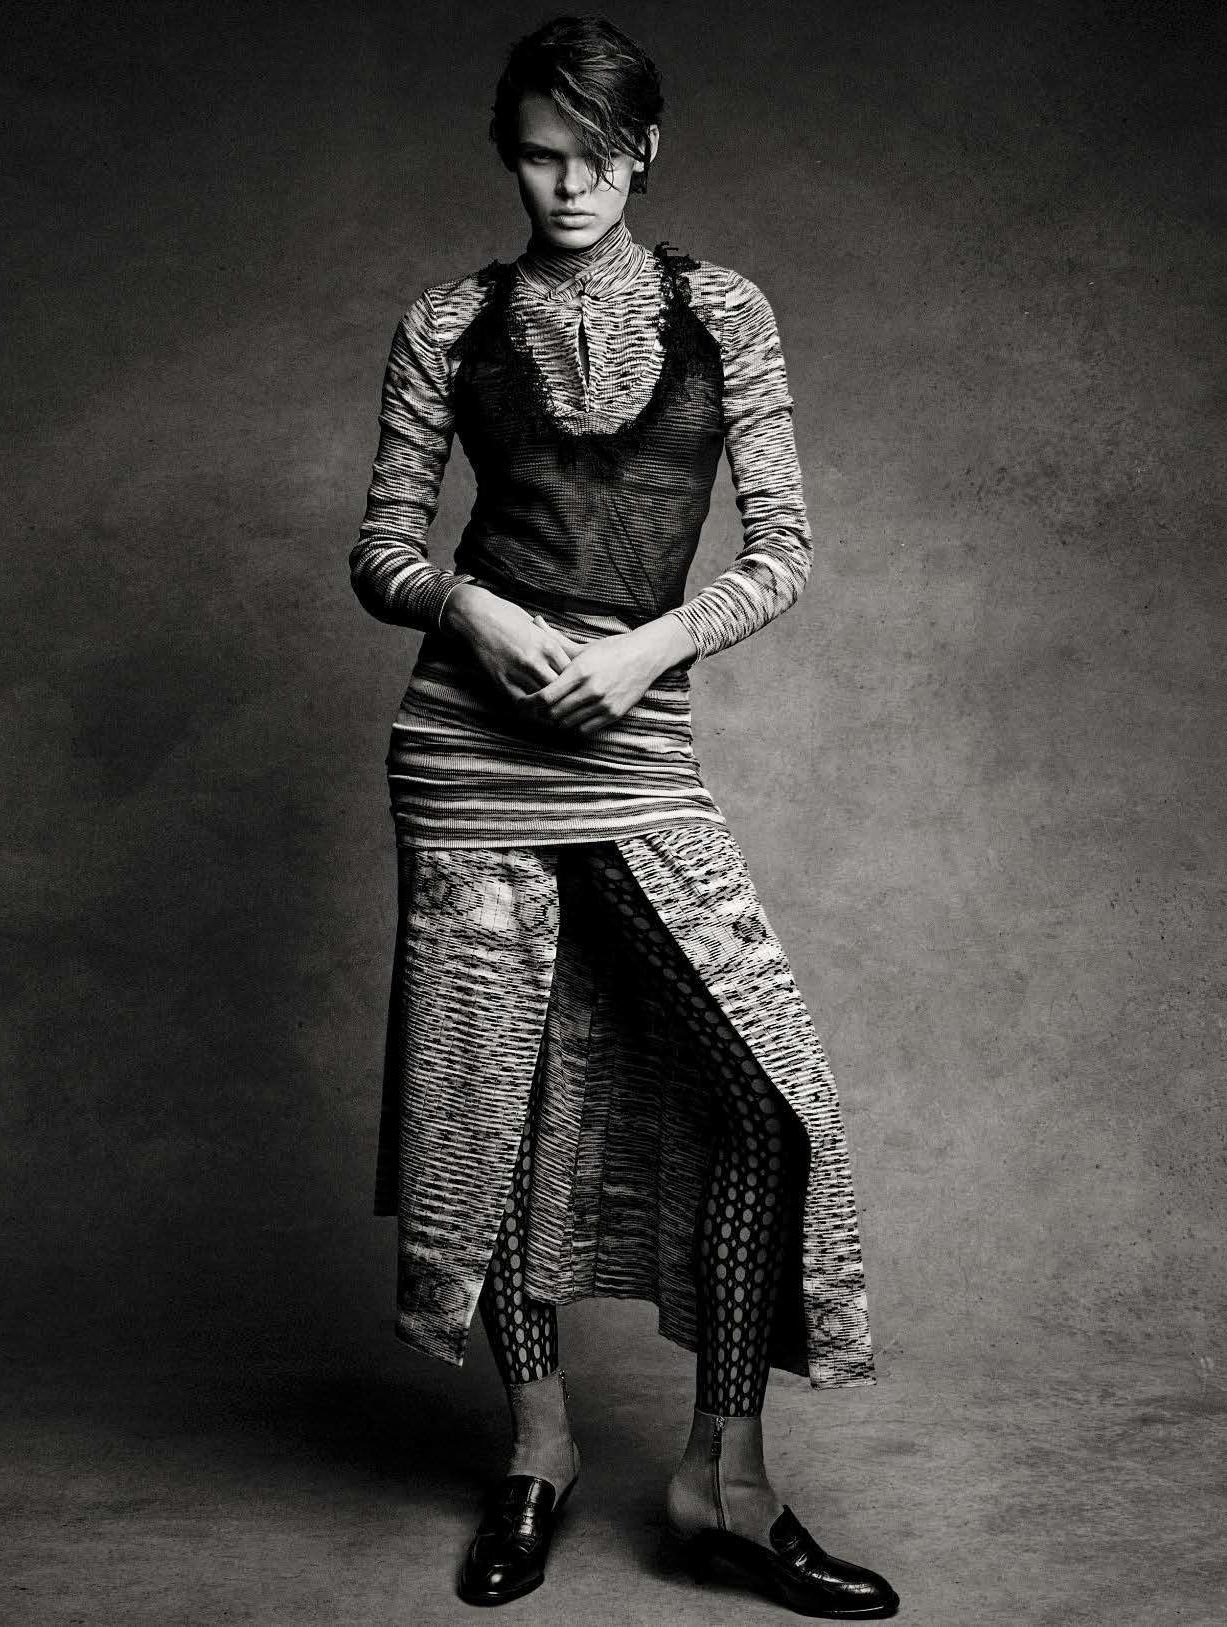 Новое поколение супермоделей / Cara Taylor by Patrick Demarchelier - Vogue Italia january 2017